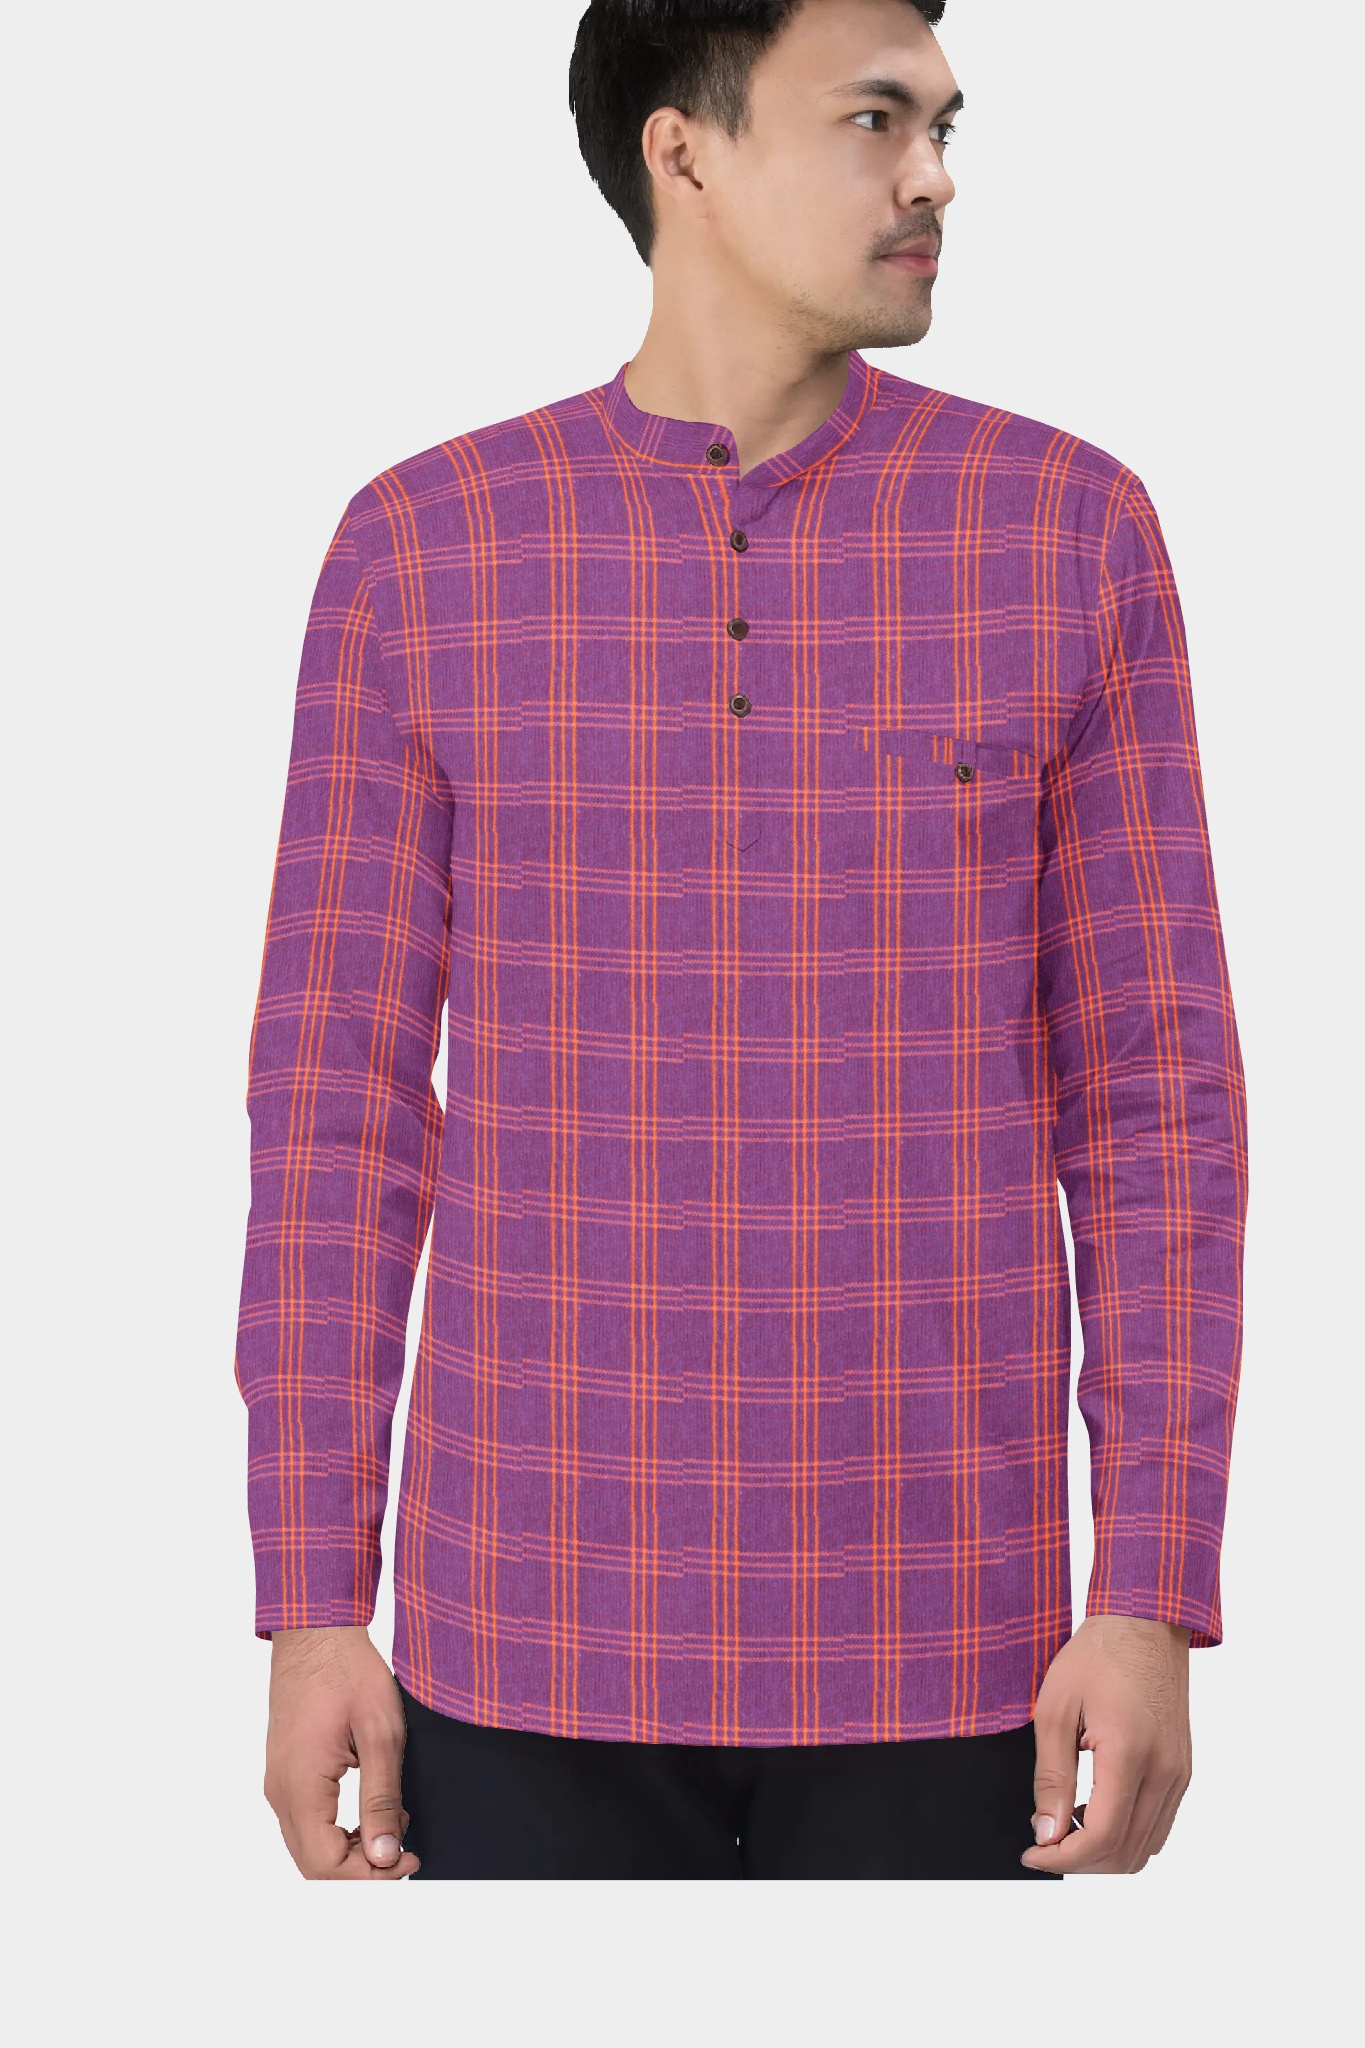 /home/customer/www/fabartcraft.com/public_html/uploadshttps://www.shopolics.com/uploads/images/medium/Purple-Yellow-Cotton-Short-Kurta-35450.jpg